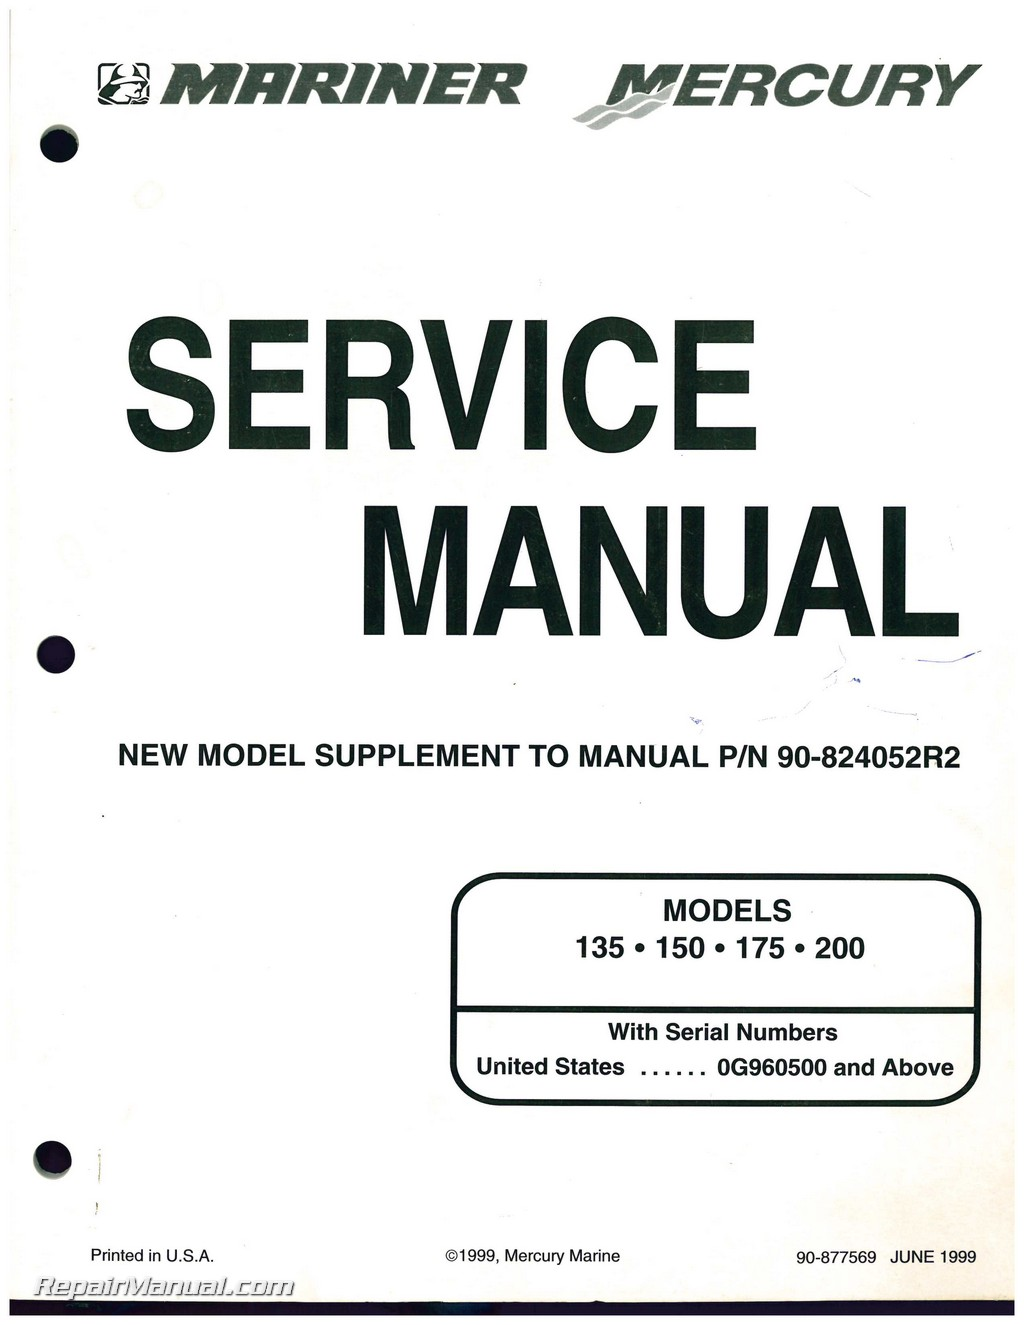 manual photo Array - used mariner mercury 135 u2022 150 u2022 175 u2022 200  marine engine service rh